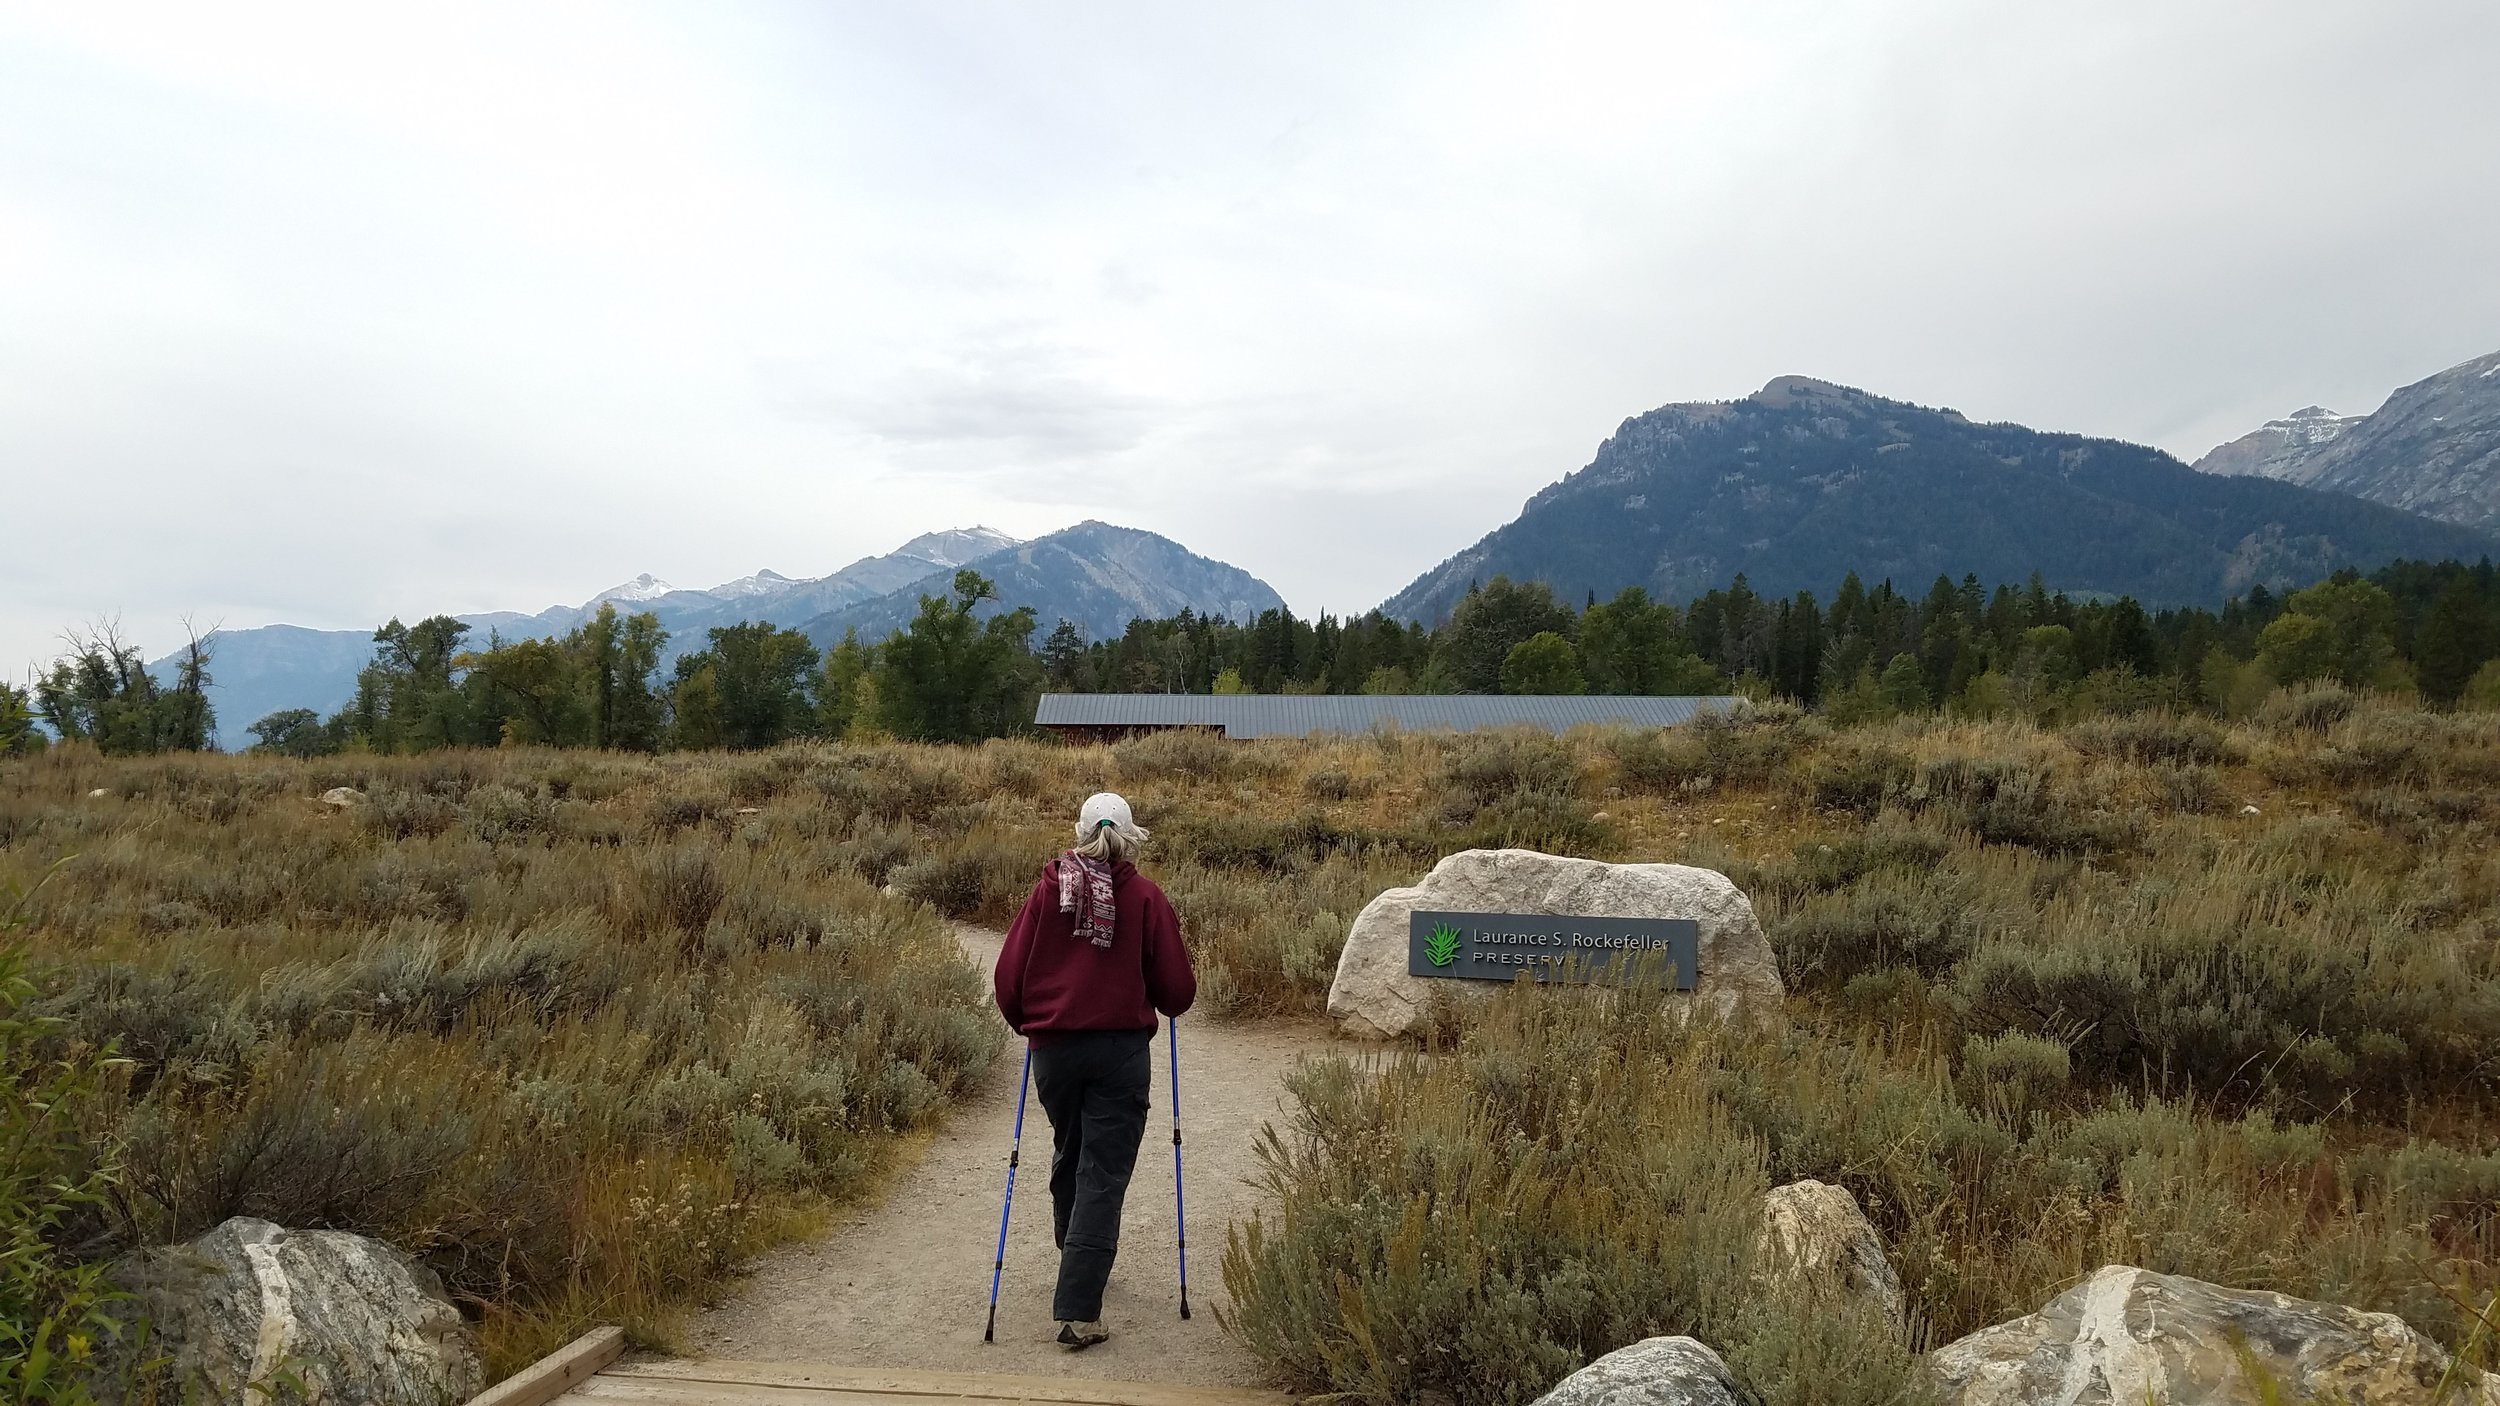 """Approaching the amazing Laurence Rockefeller visitor center, a magnificent hiking environment (the """"beware of bear"""" signs perfectly appropriate reminders that we are visitors in their home)."""